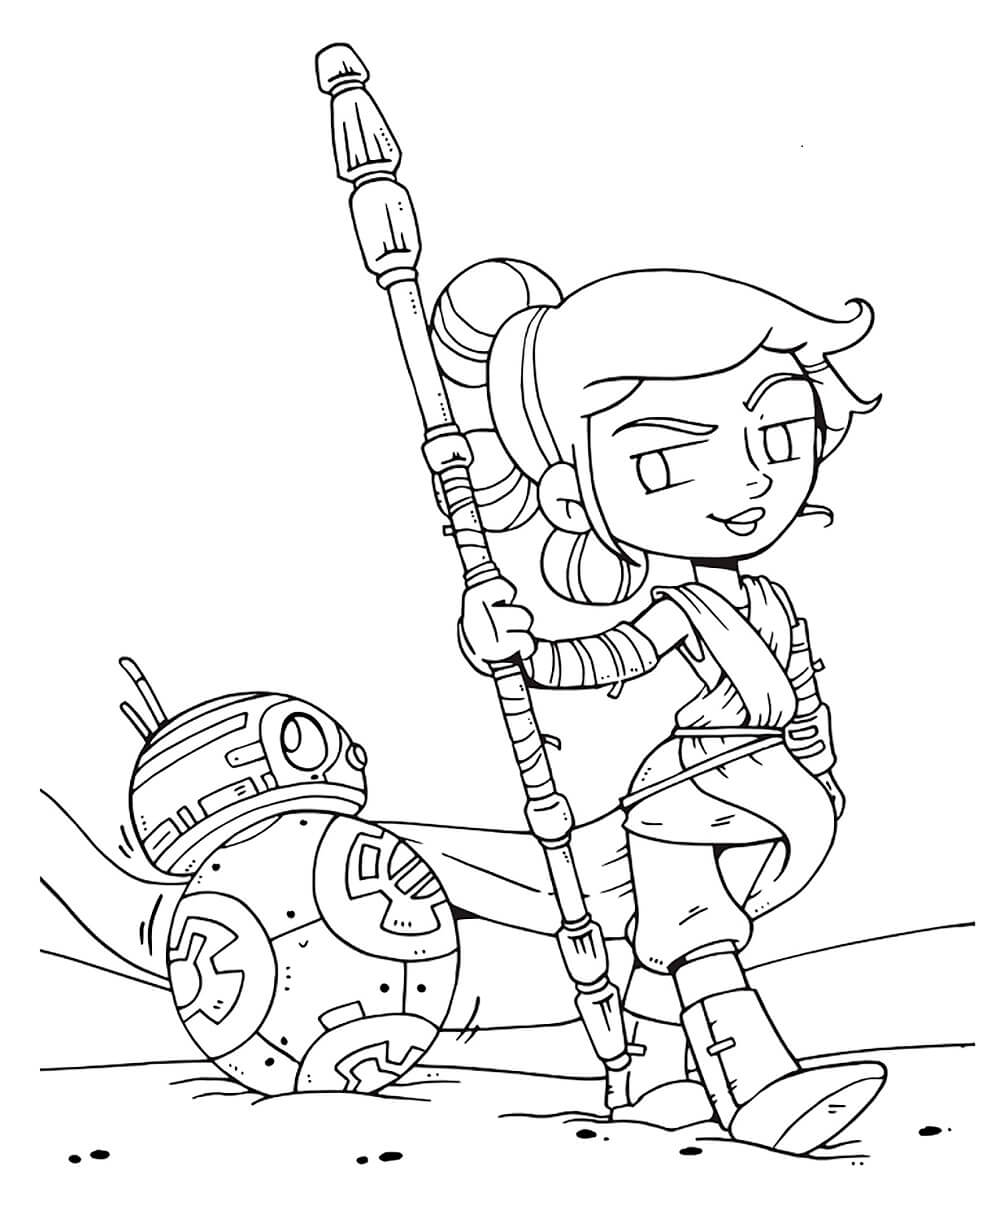 Star Wars The Last Jedi Coloring Page Rey and BB8